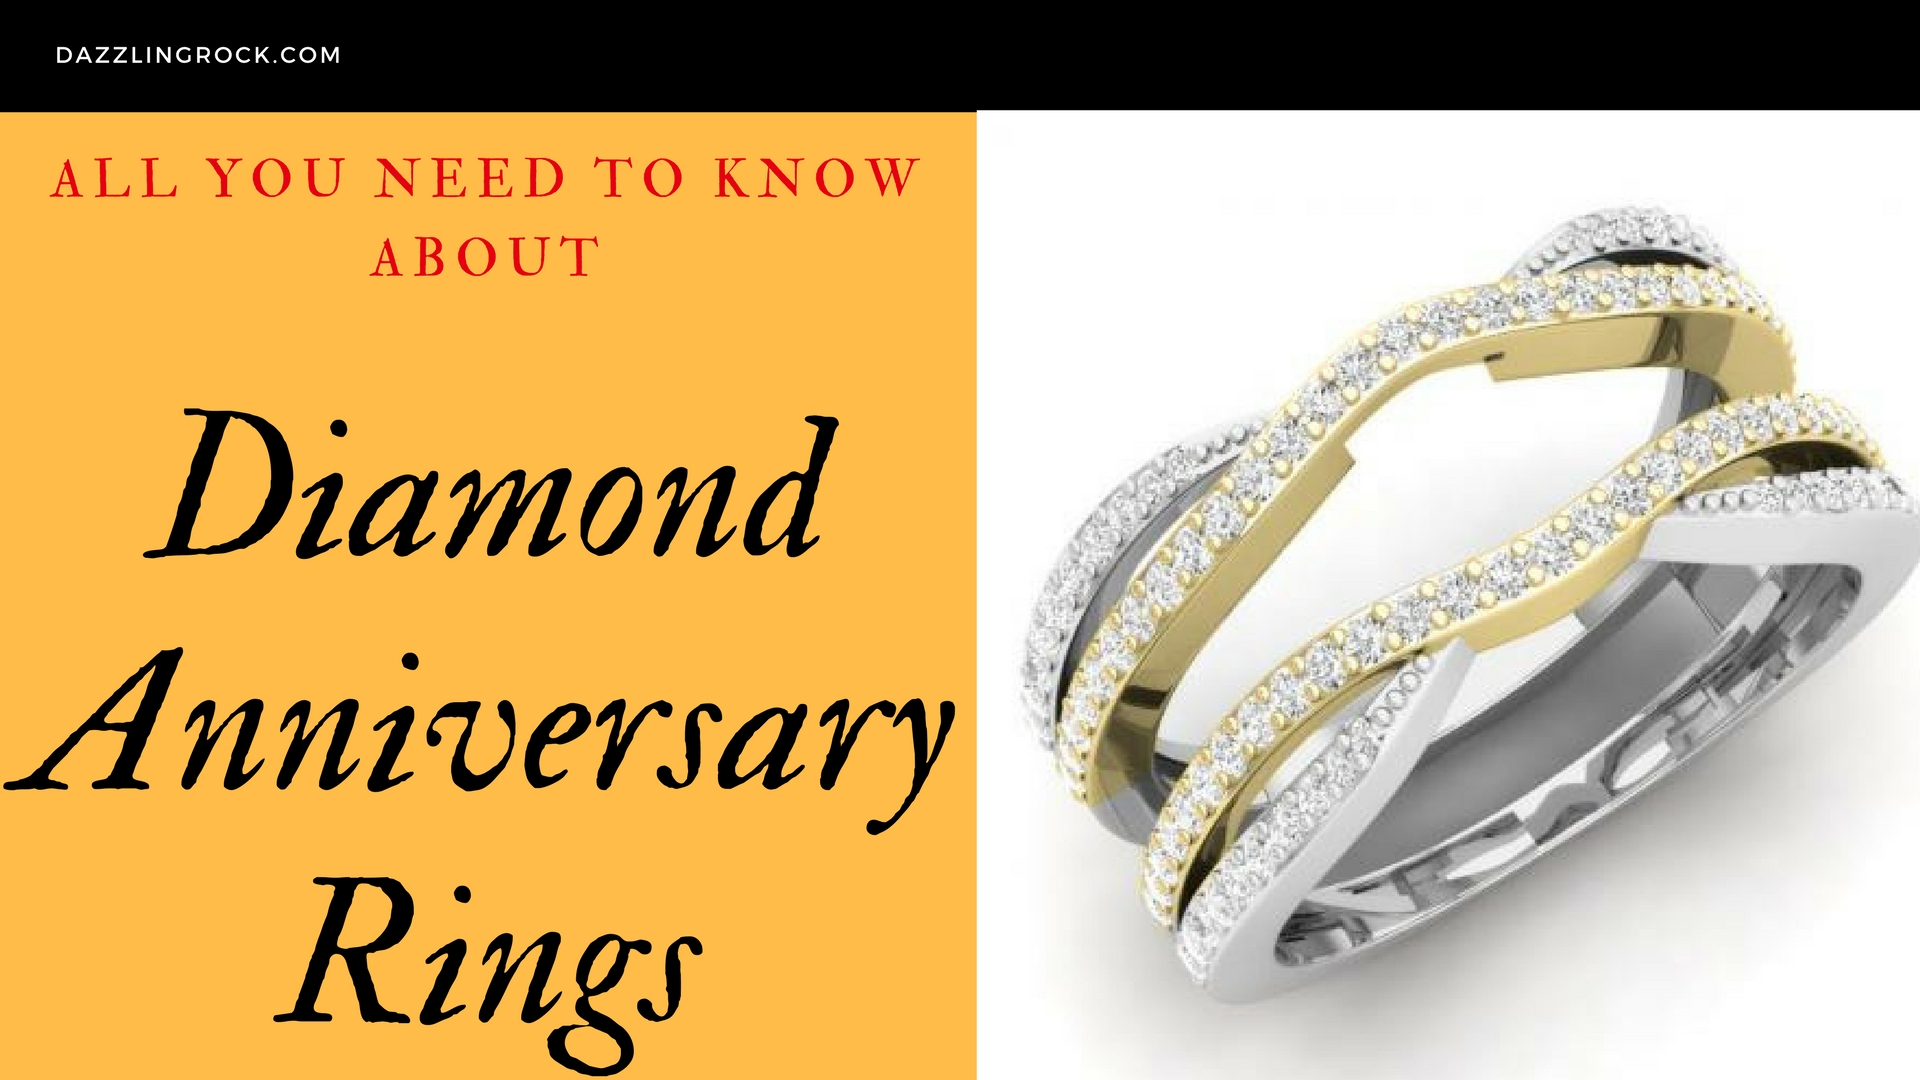 bridal product jacksonville engagements and rings fl diamond engagement aniversary categories jewelry anniversaries ring